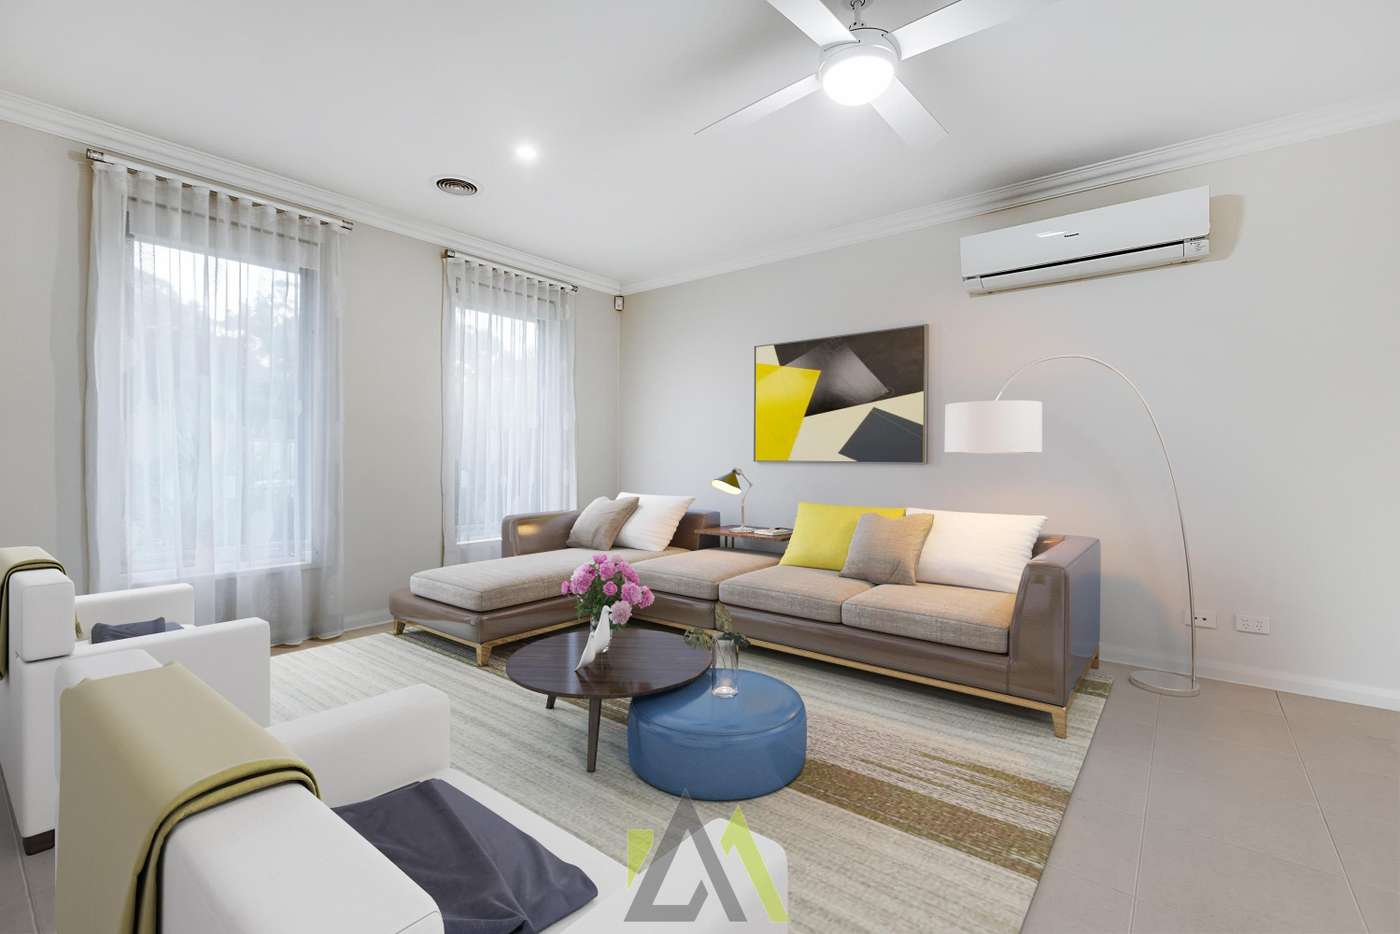 Fifth view of Homely unit listing, 1/67 Cranbourne-Frankston Road, Langwarrin VIC 3910